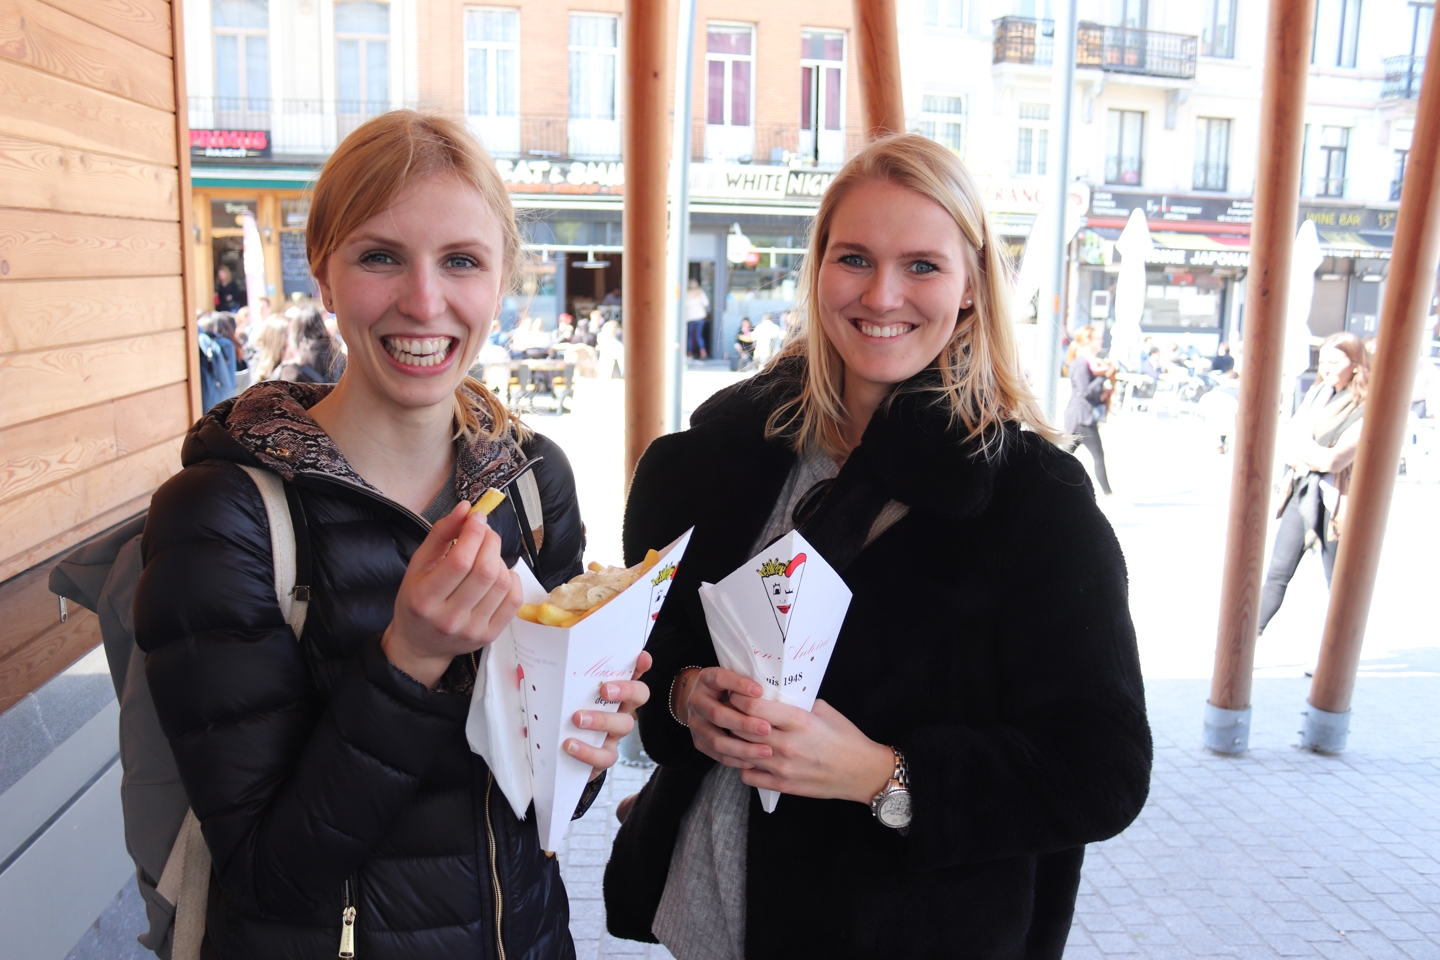 Two female students eating begian fries